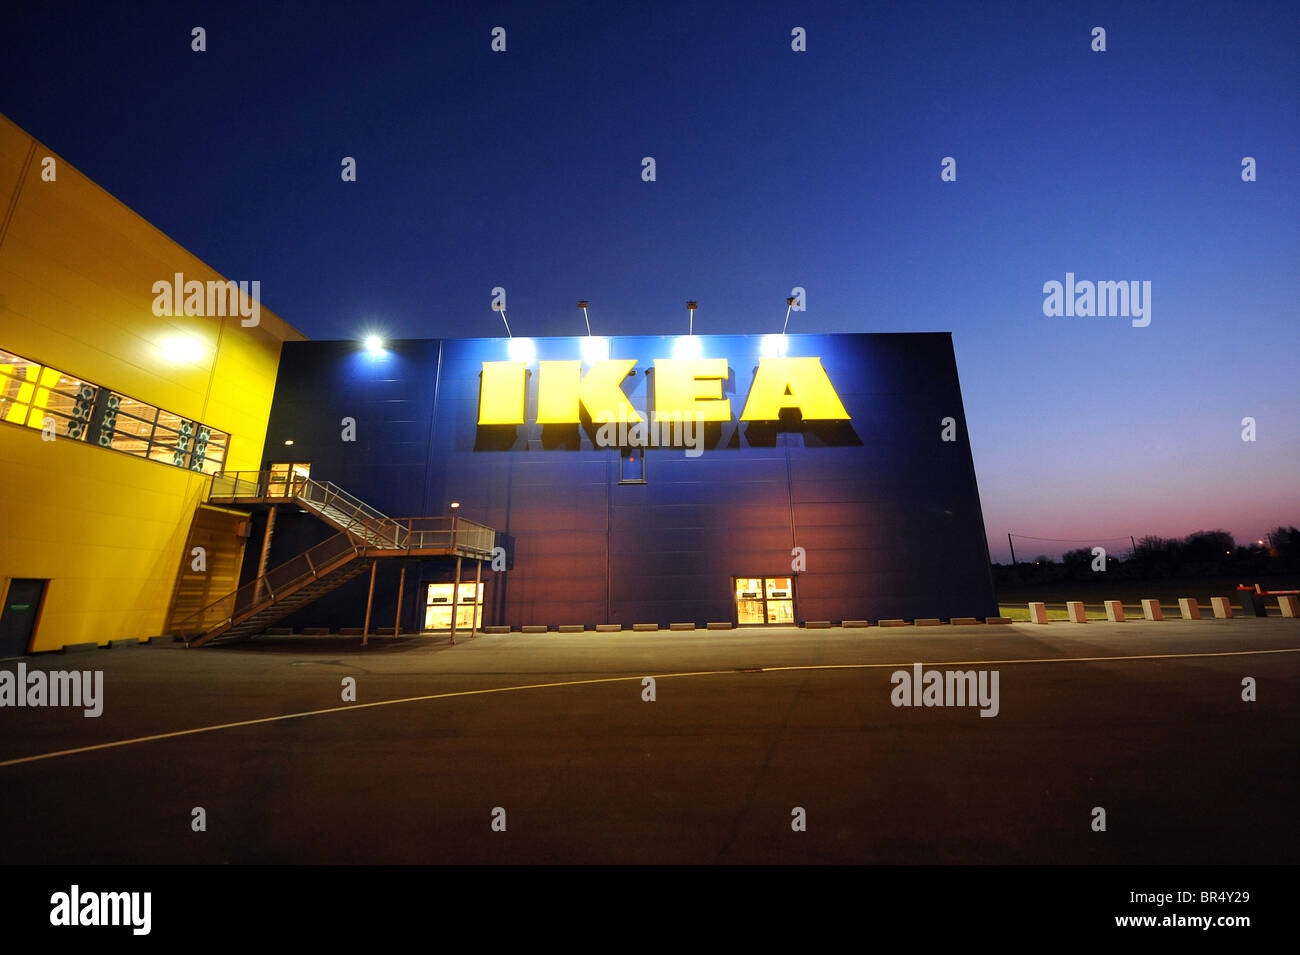 Magasin Ikea Henin Beaumont Henin Beaumont 62 Magasin Ikea Banque D Images Photo Stock